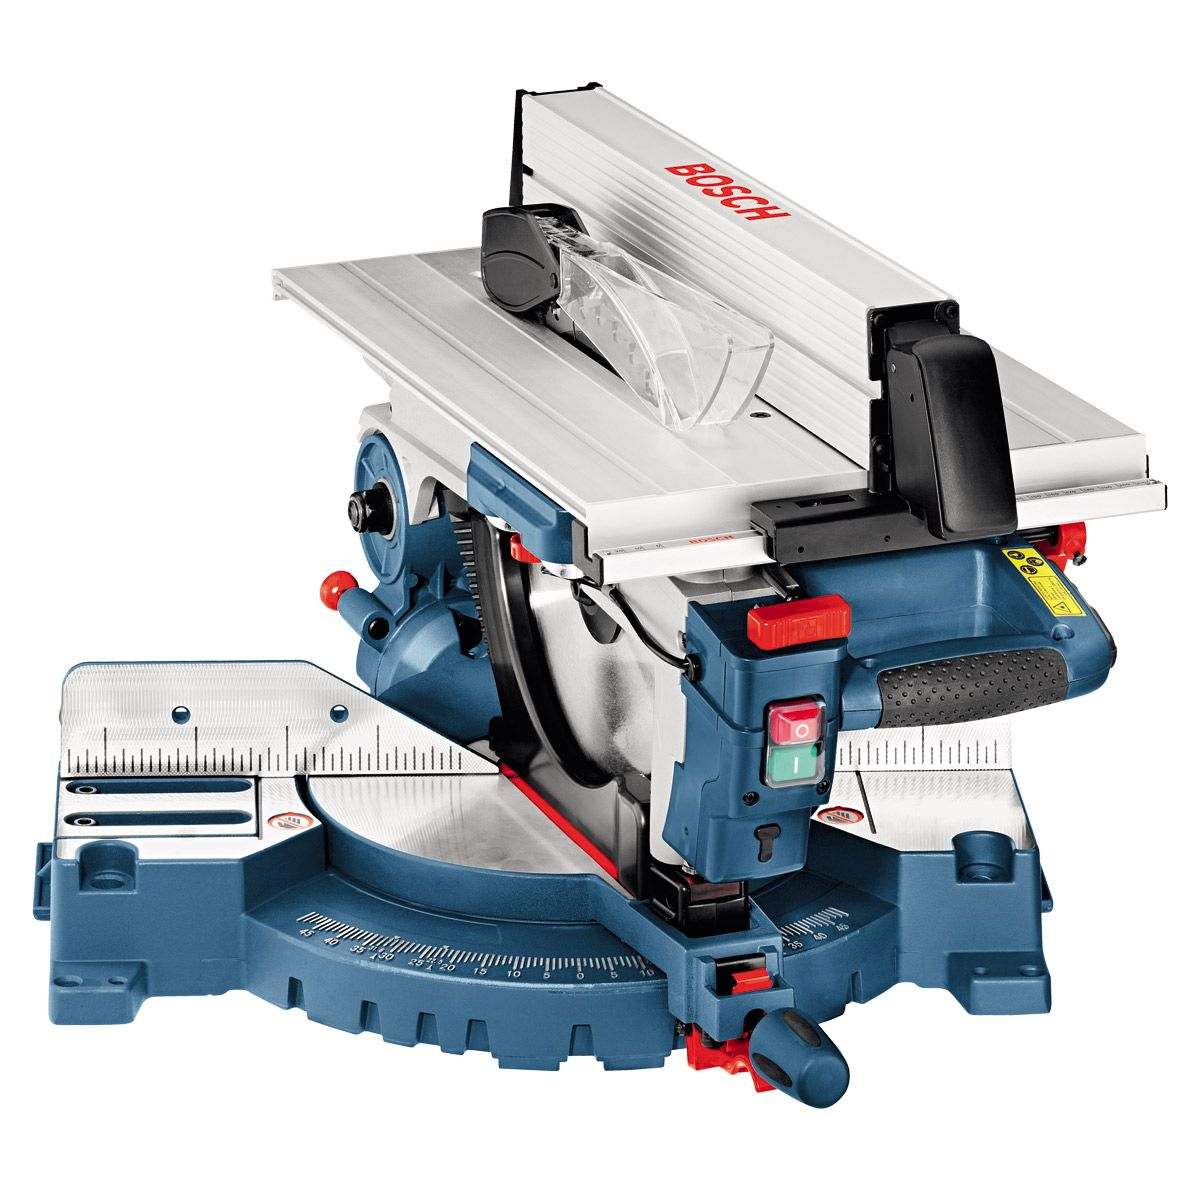 Bosch Gtm12 Combination Mitre Table Saw 110v Bosch Table Saw Bosch Tools